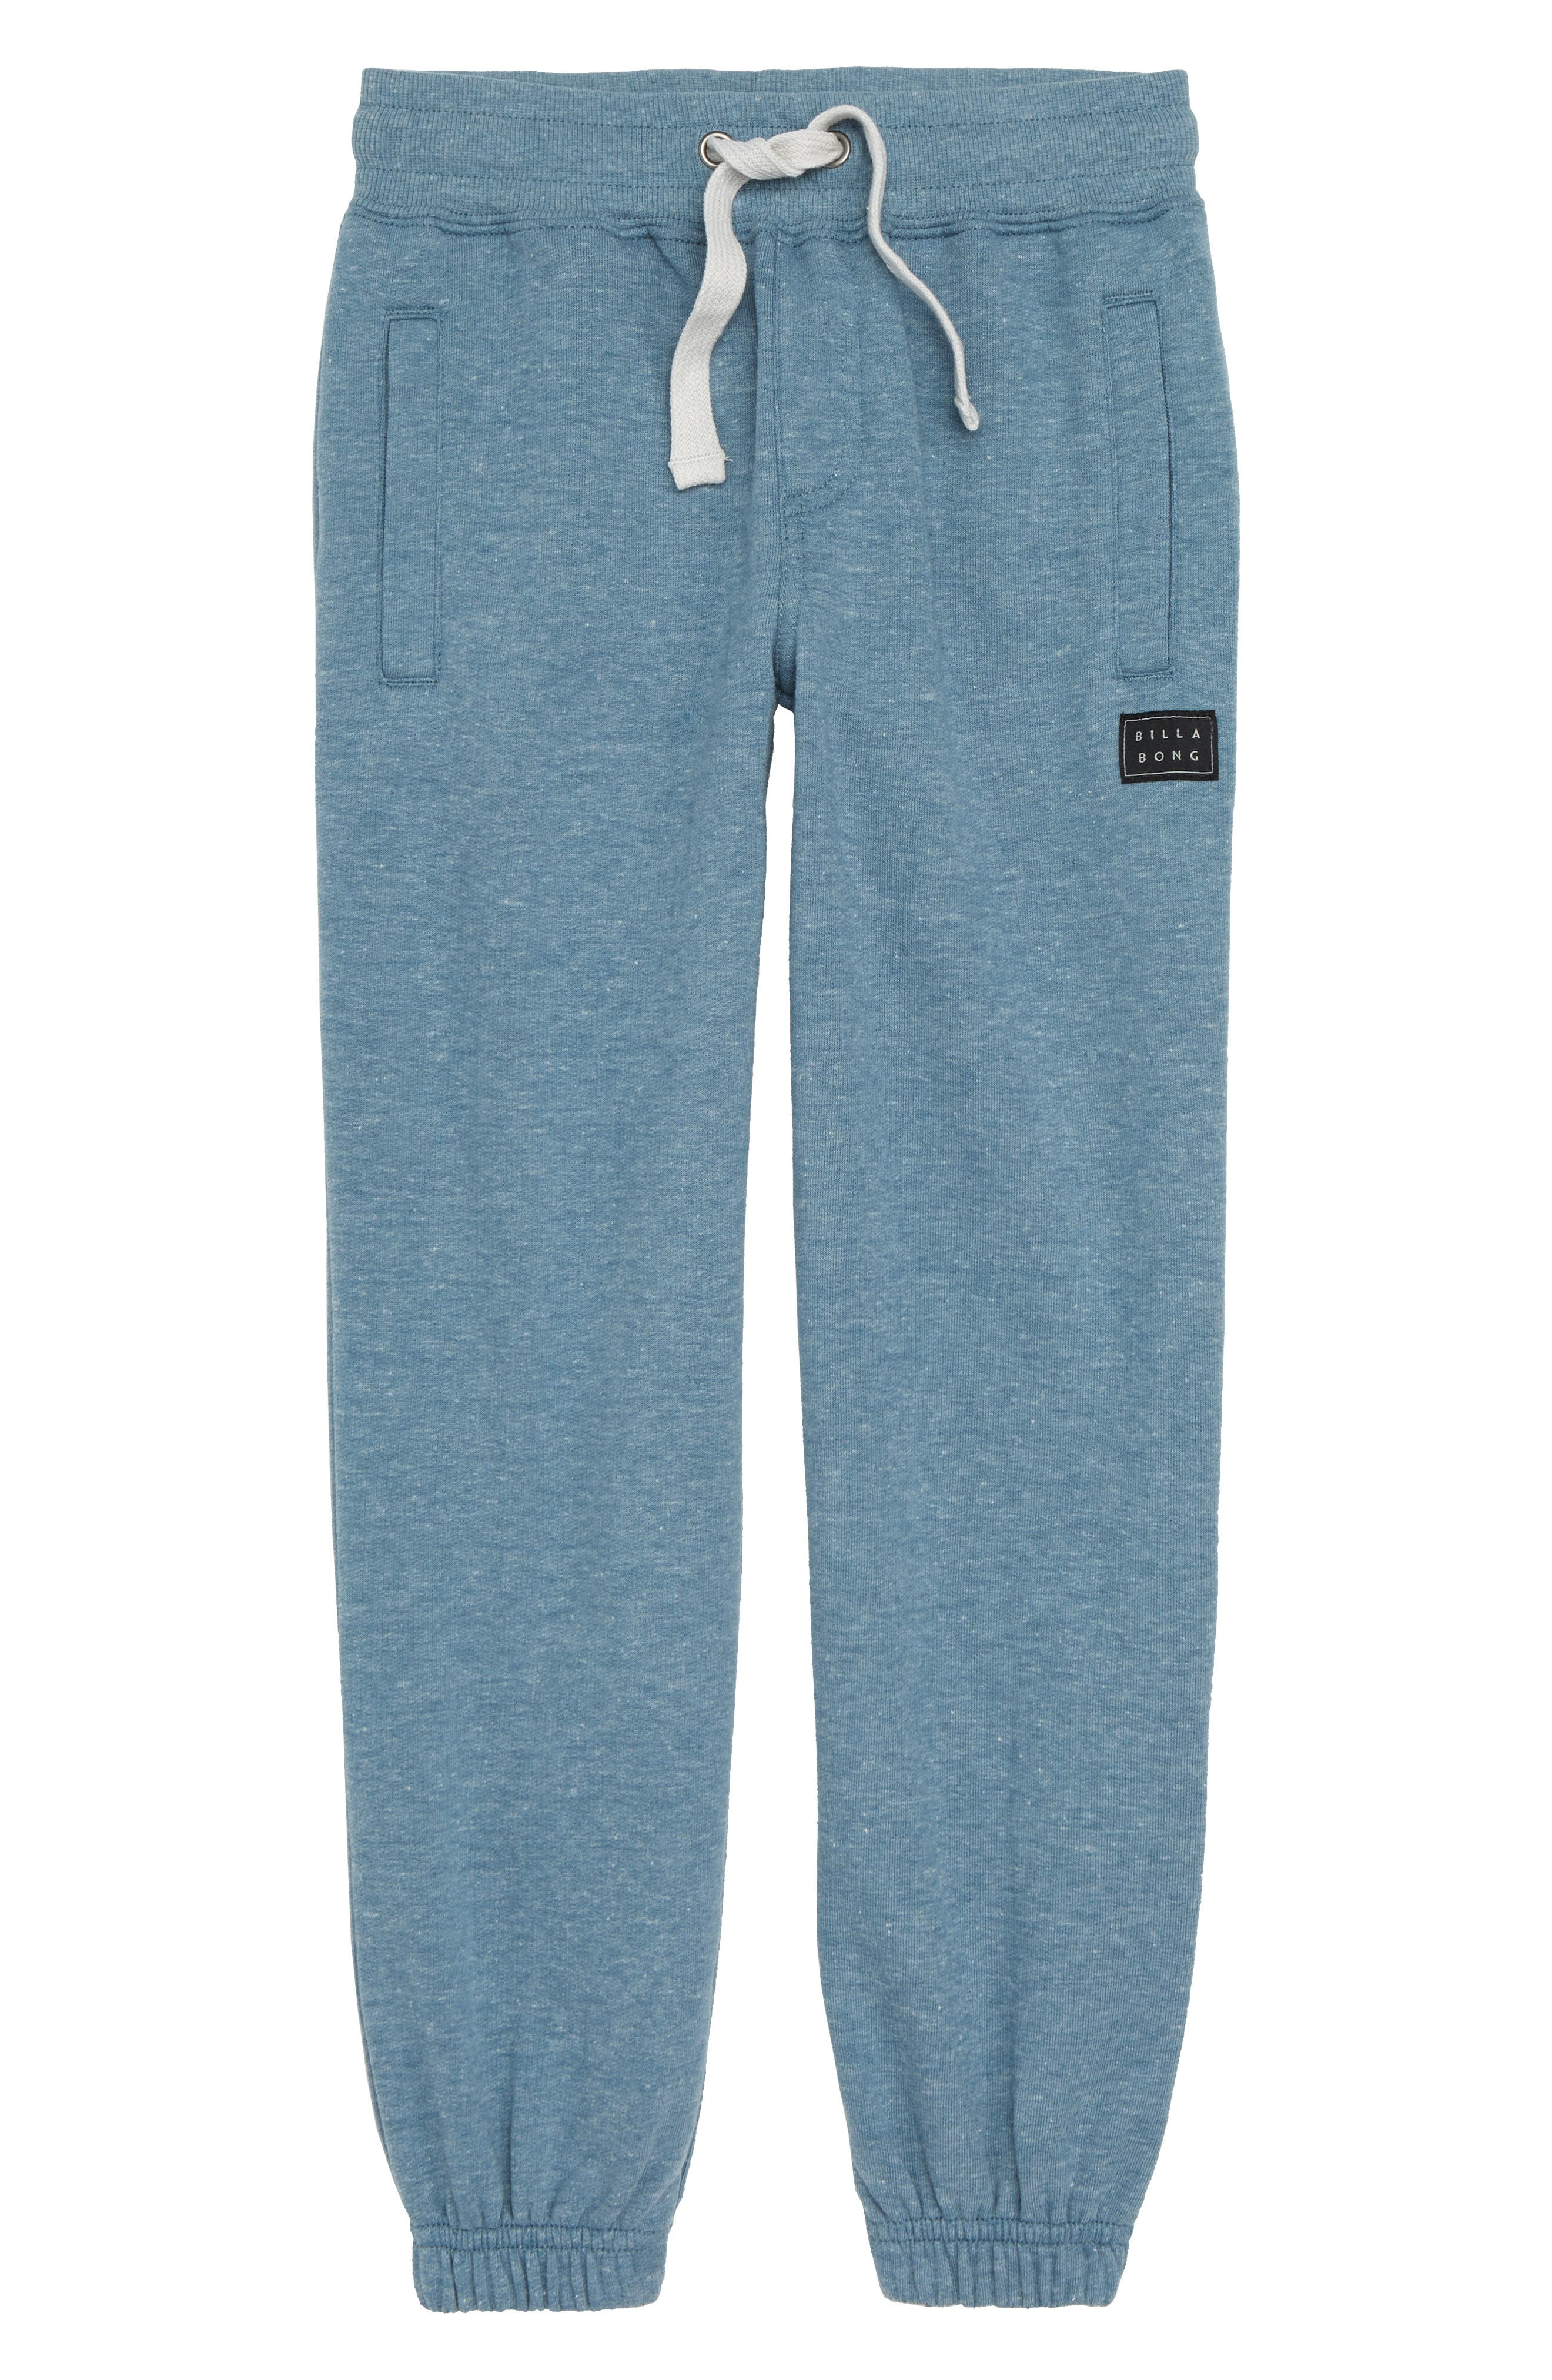 All Day Sweatpants,                         Main,                         color, WASHED BLUE